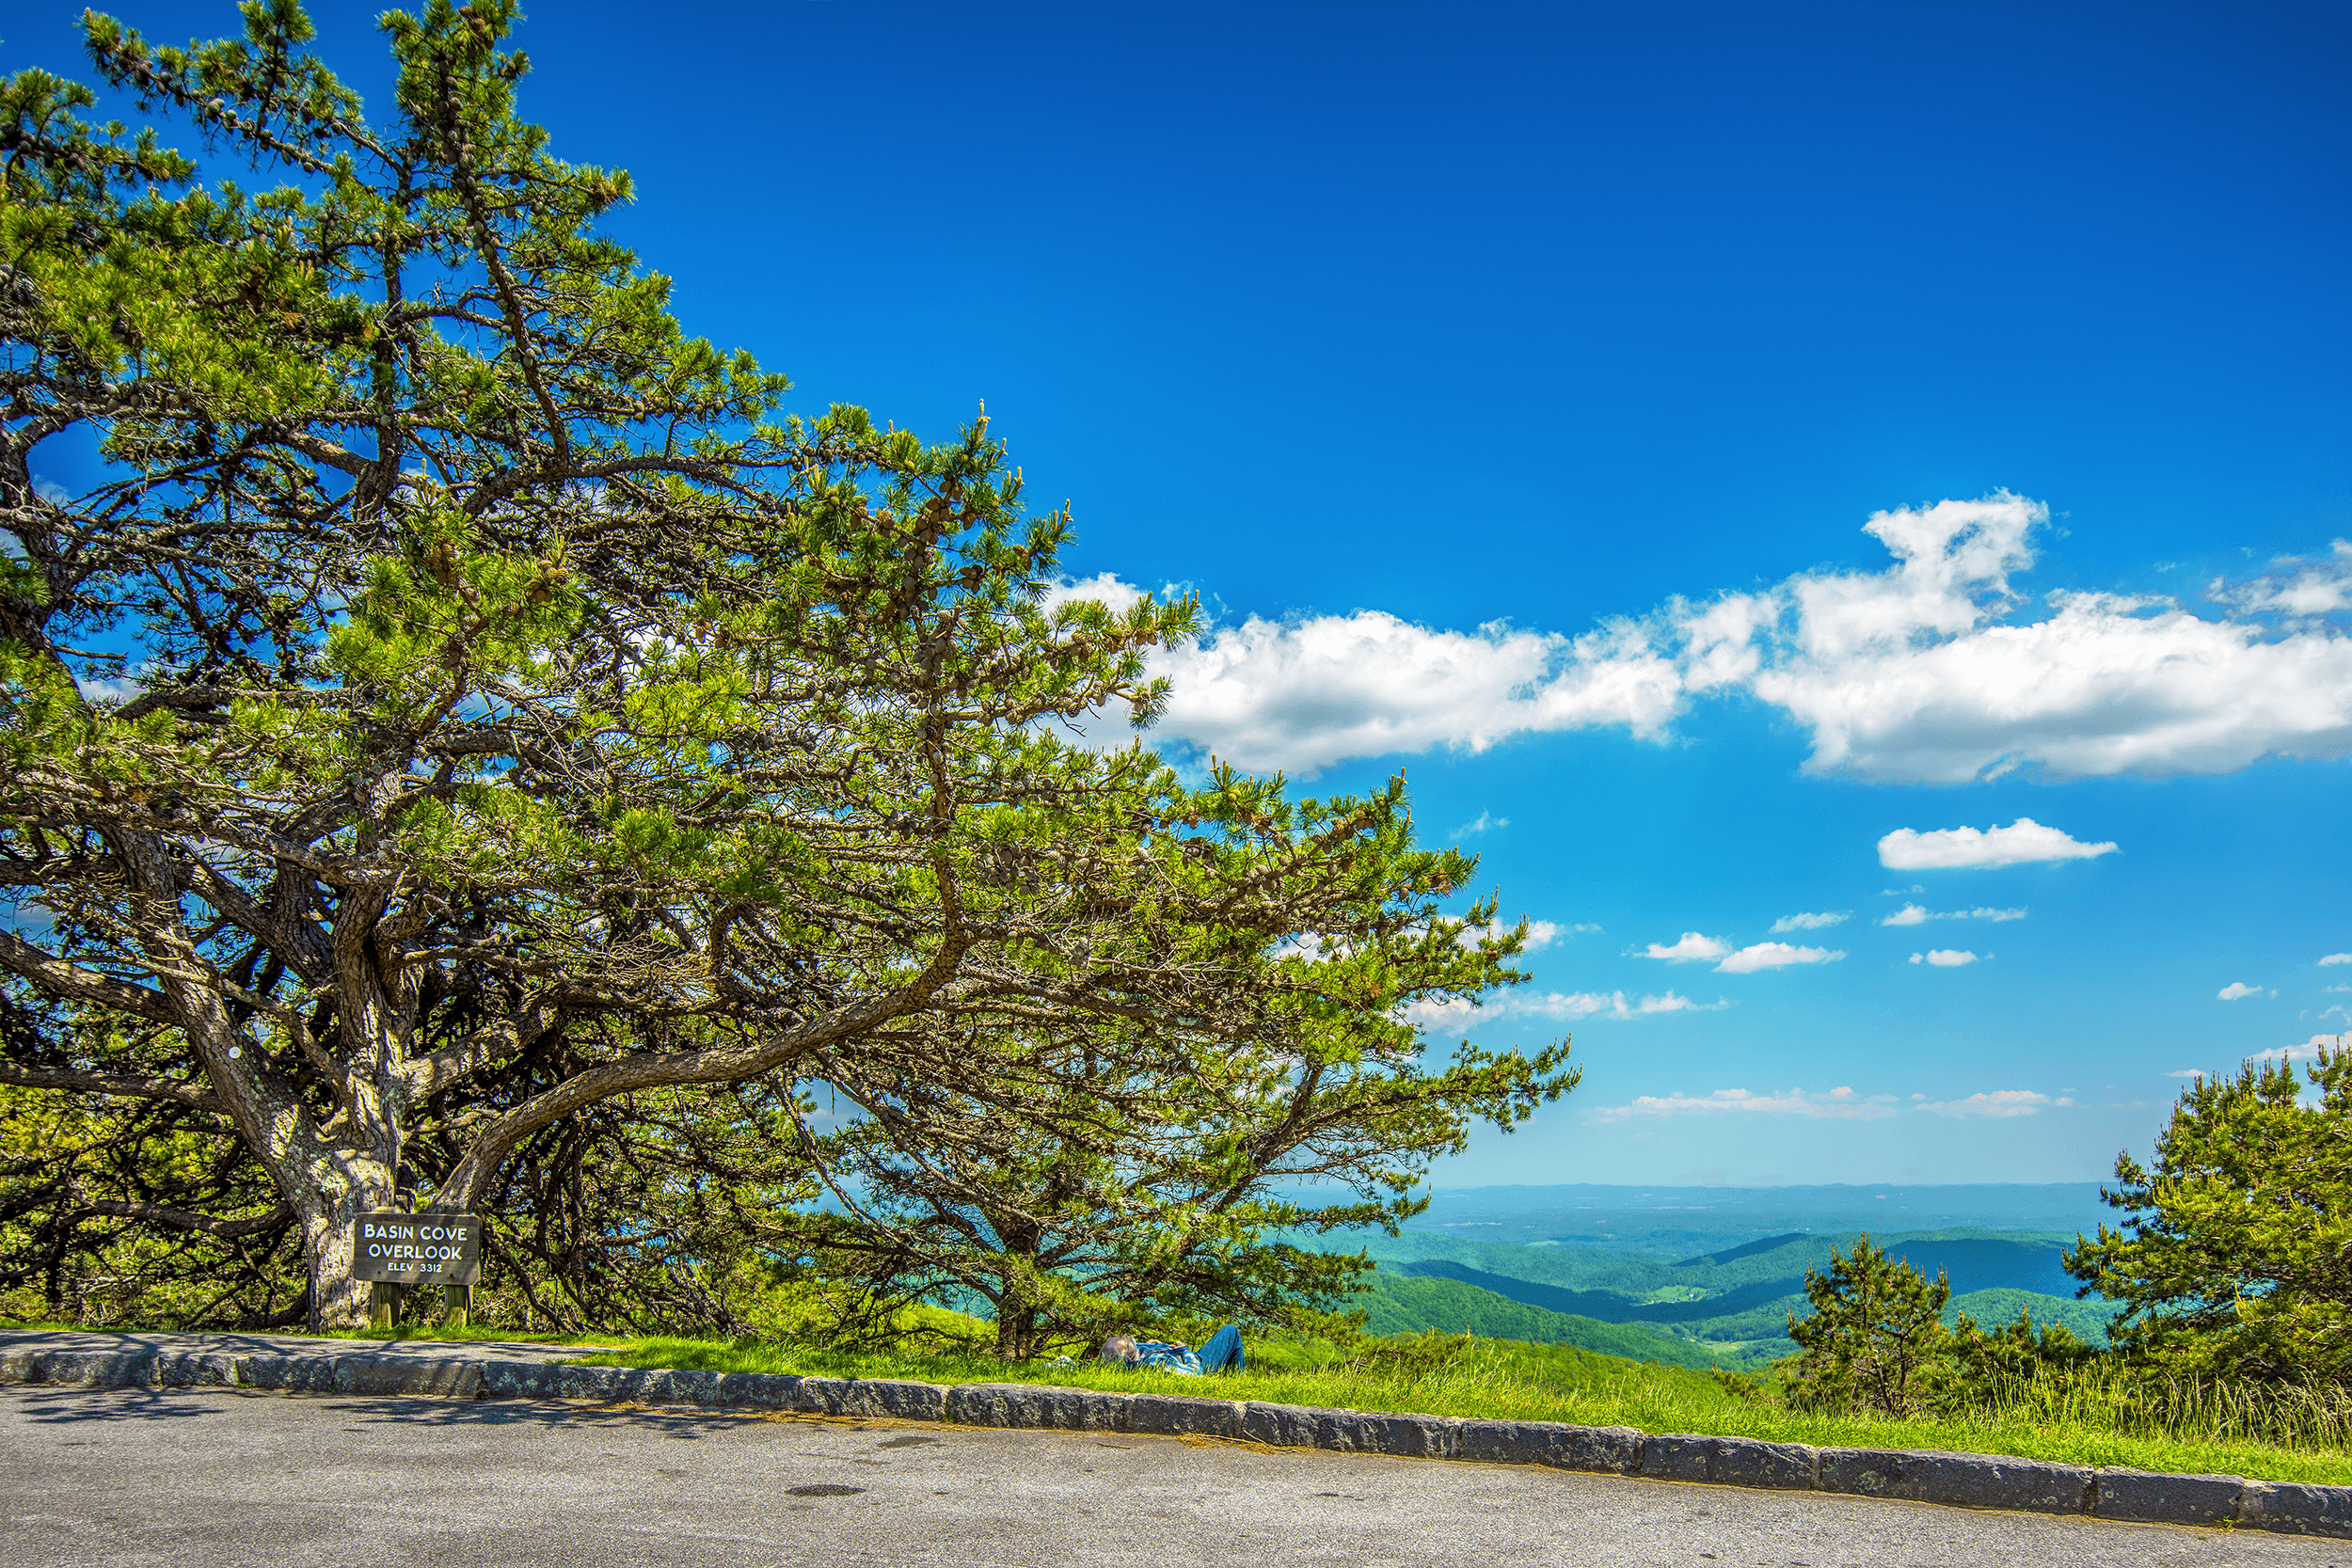 The  Basin Cove Overlook  at Milepost 244.7 on the Blue Ridge Parkway is a picturesque spot with long-range views and a big old photogenic pine tree. The southeast facing overlook is situated at an elevation of 3,312 feet (1,009 meters). Two hiking trails, the  Bluff Mountain Trail  and the  Flat Rock Ridge Trail , start from the overlook.